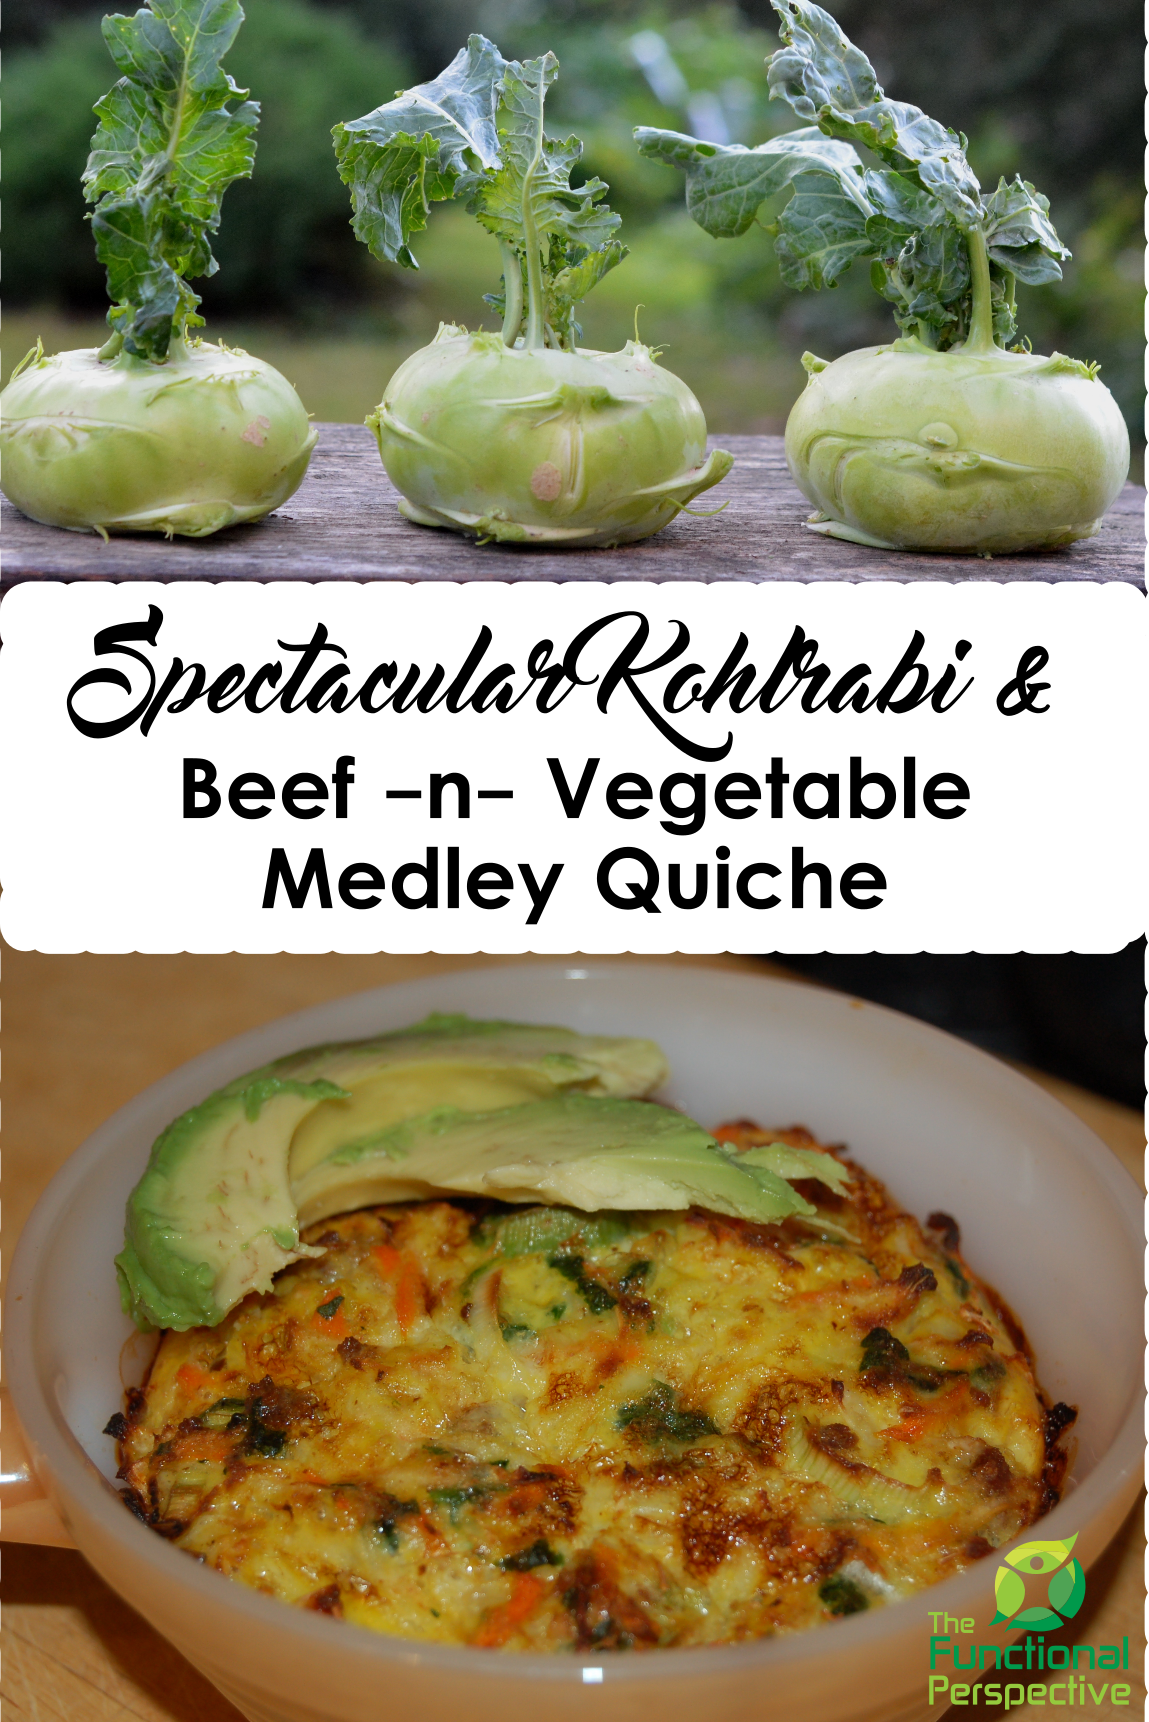 Spectacular Kohlrabi & Beef Vegetable Quiche